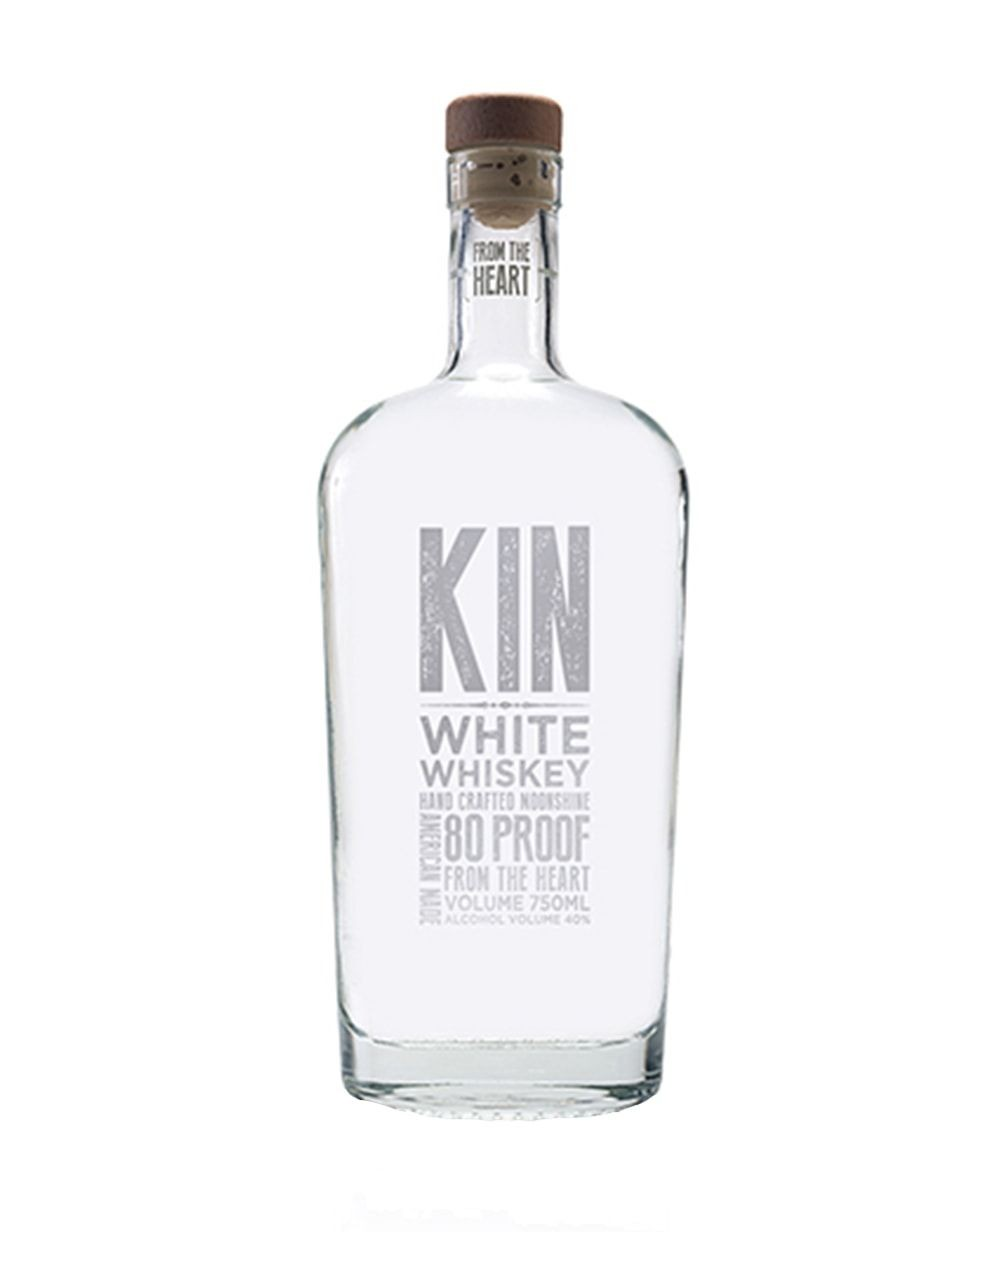 Kin White Whiskey Buy Online Or Send As A Gift Reservebar